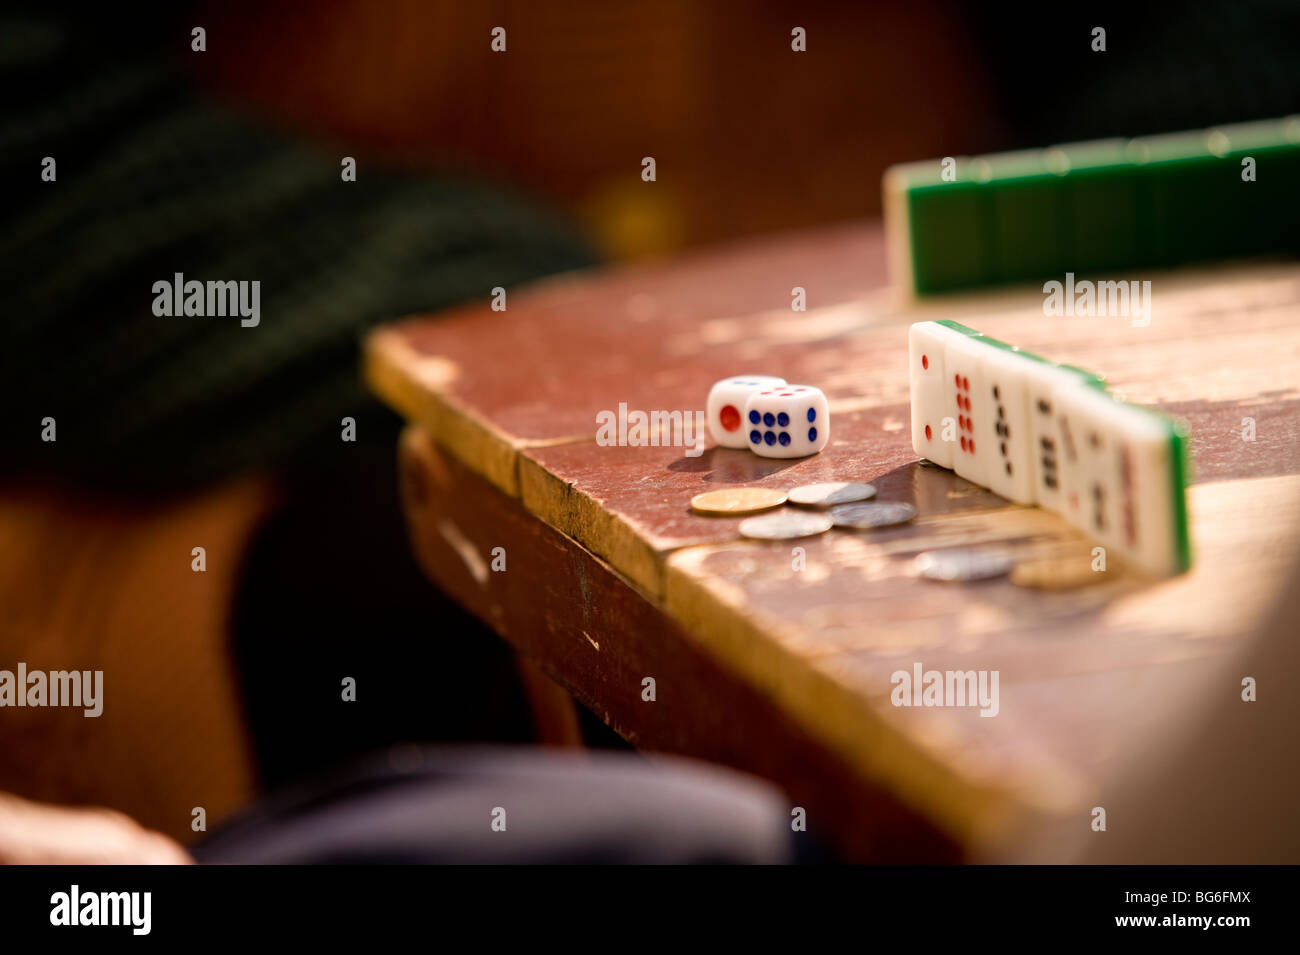 Domino Game, The Old City, Shanghai, China - Stock Image